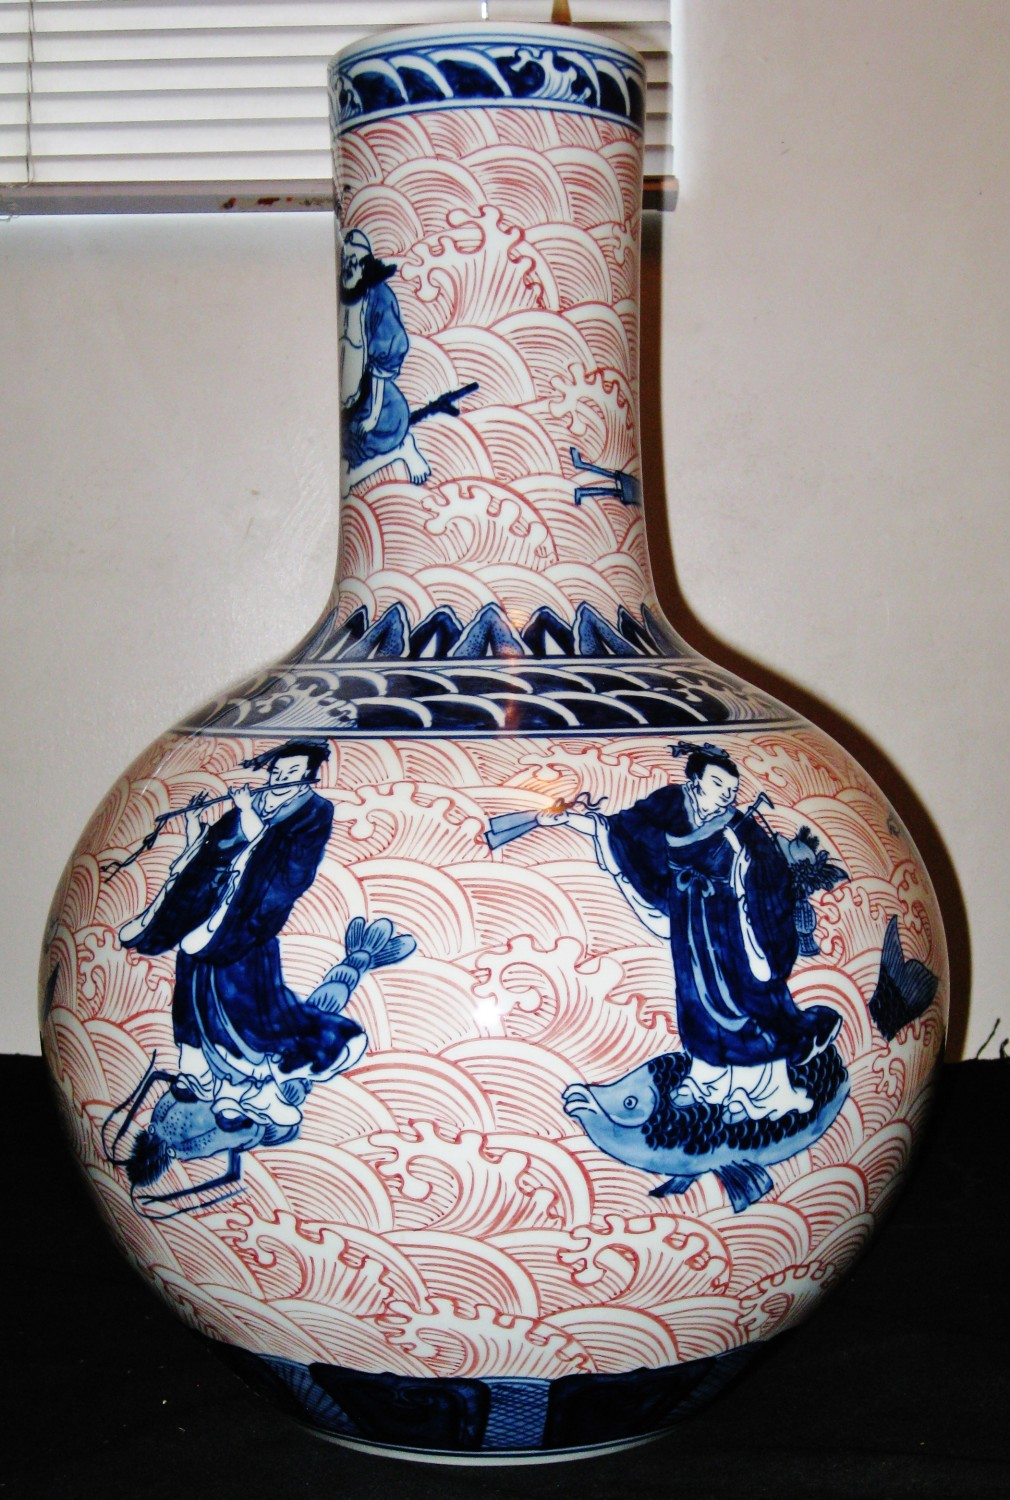 Chinese B&W Underglaze Red 8 Immortals Porcelain Vase,Dao Quang Mark,19thC. NR.